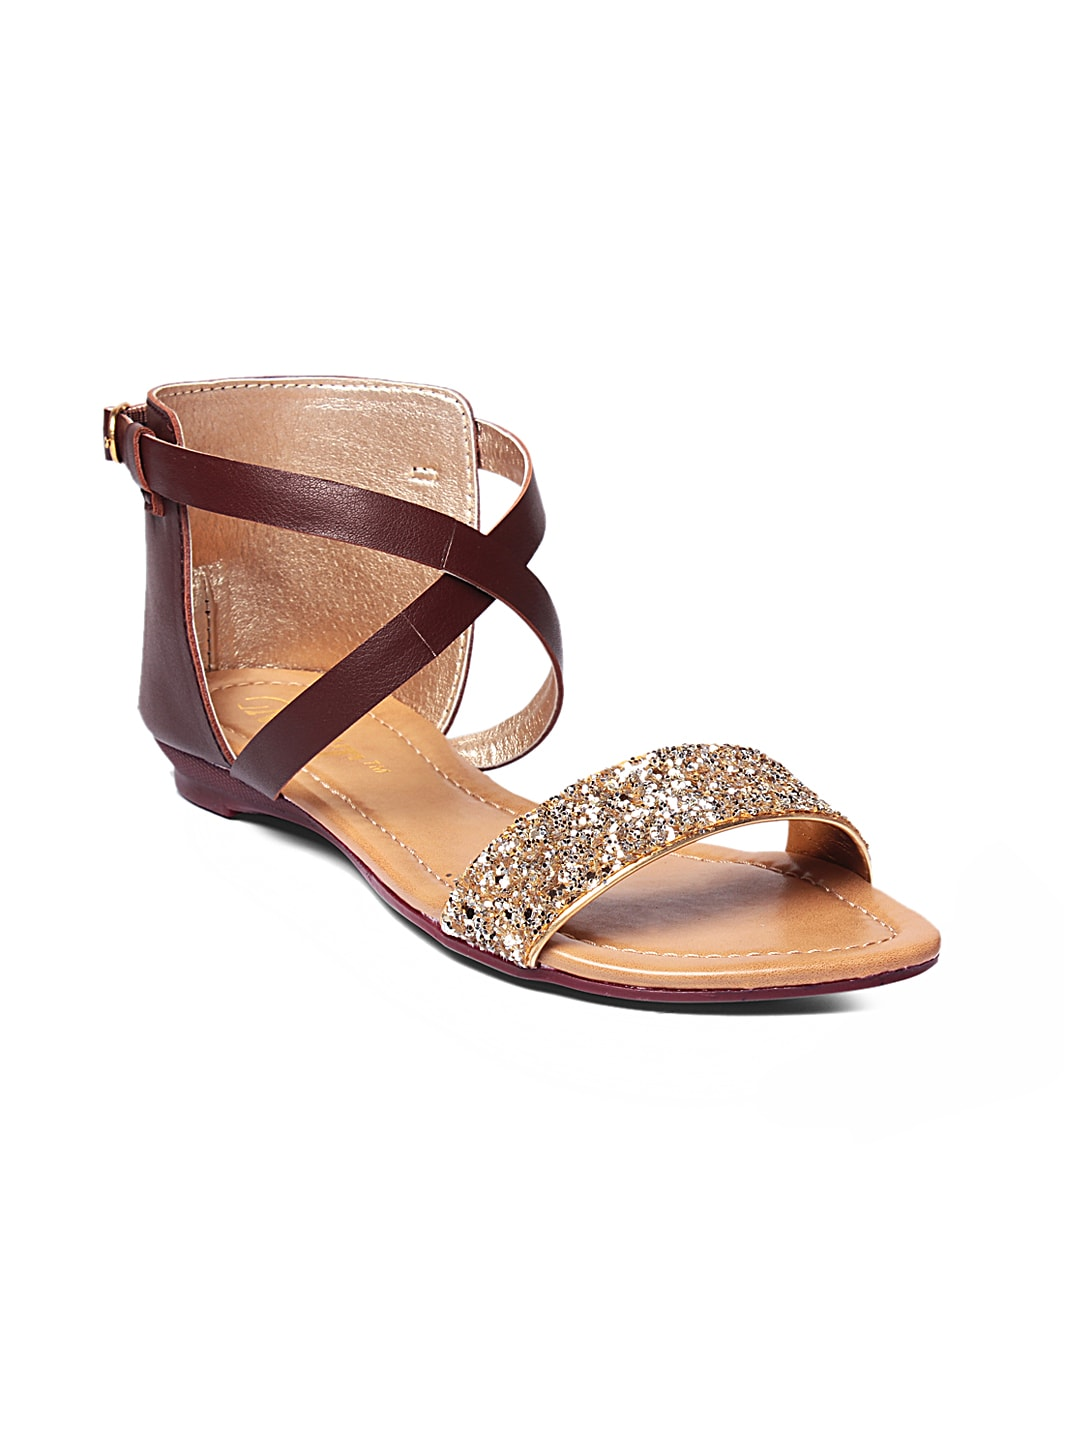 GNIST Women Gold-Toned & Brown Shimmery Flats